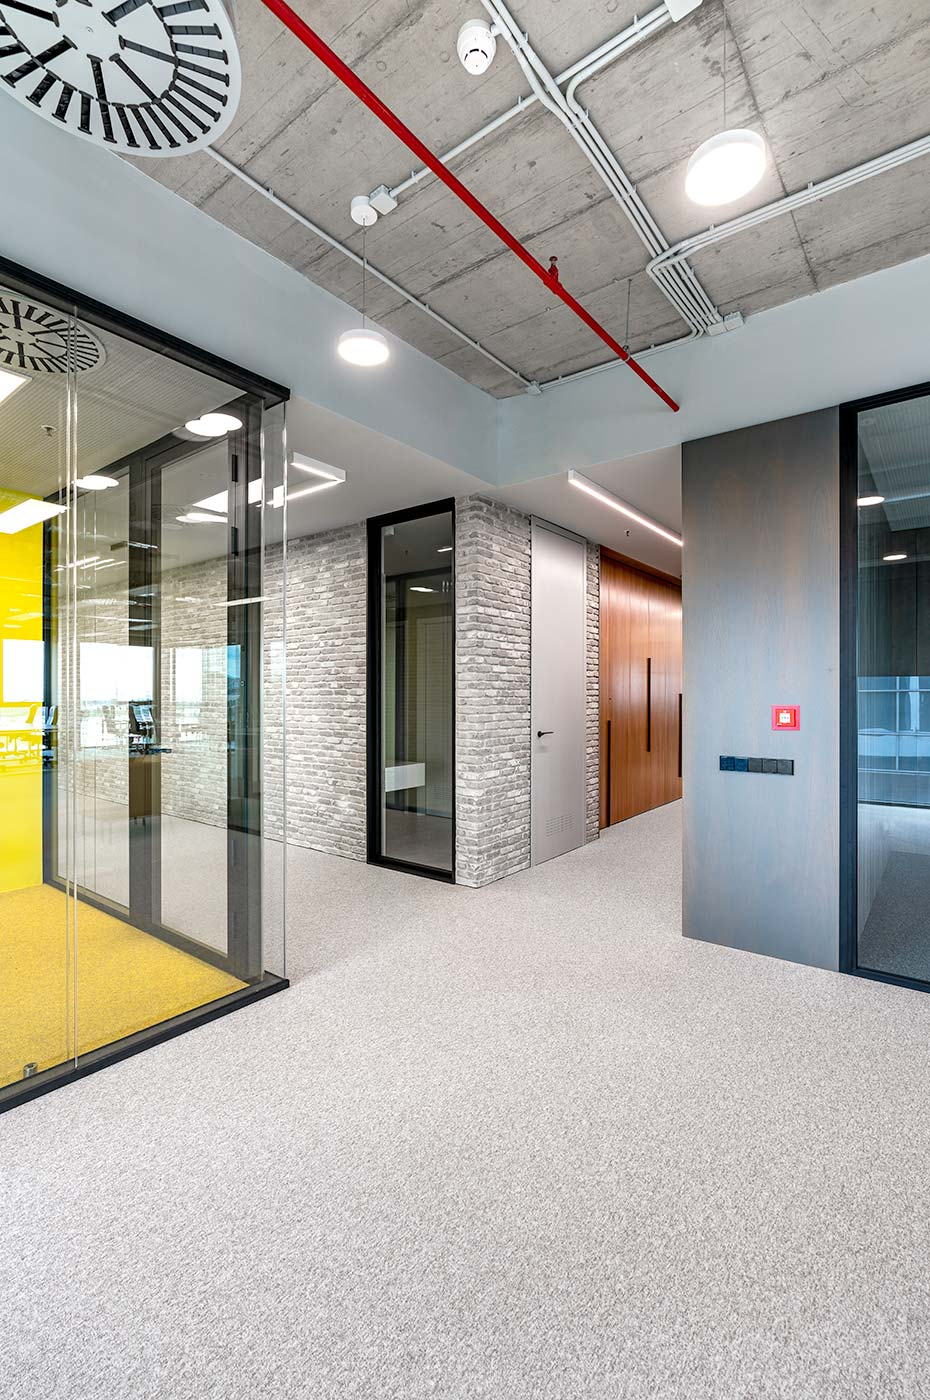 office Sumup floor 10 based in Sofia, Bulgaria.